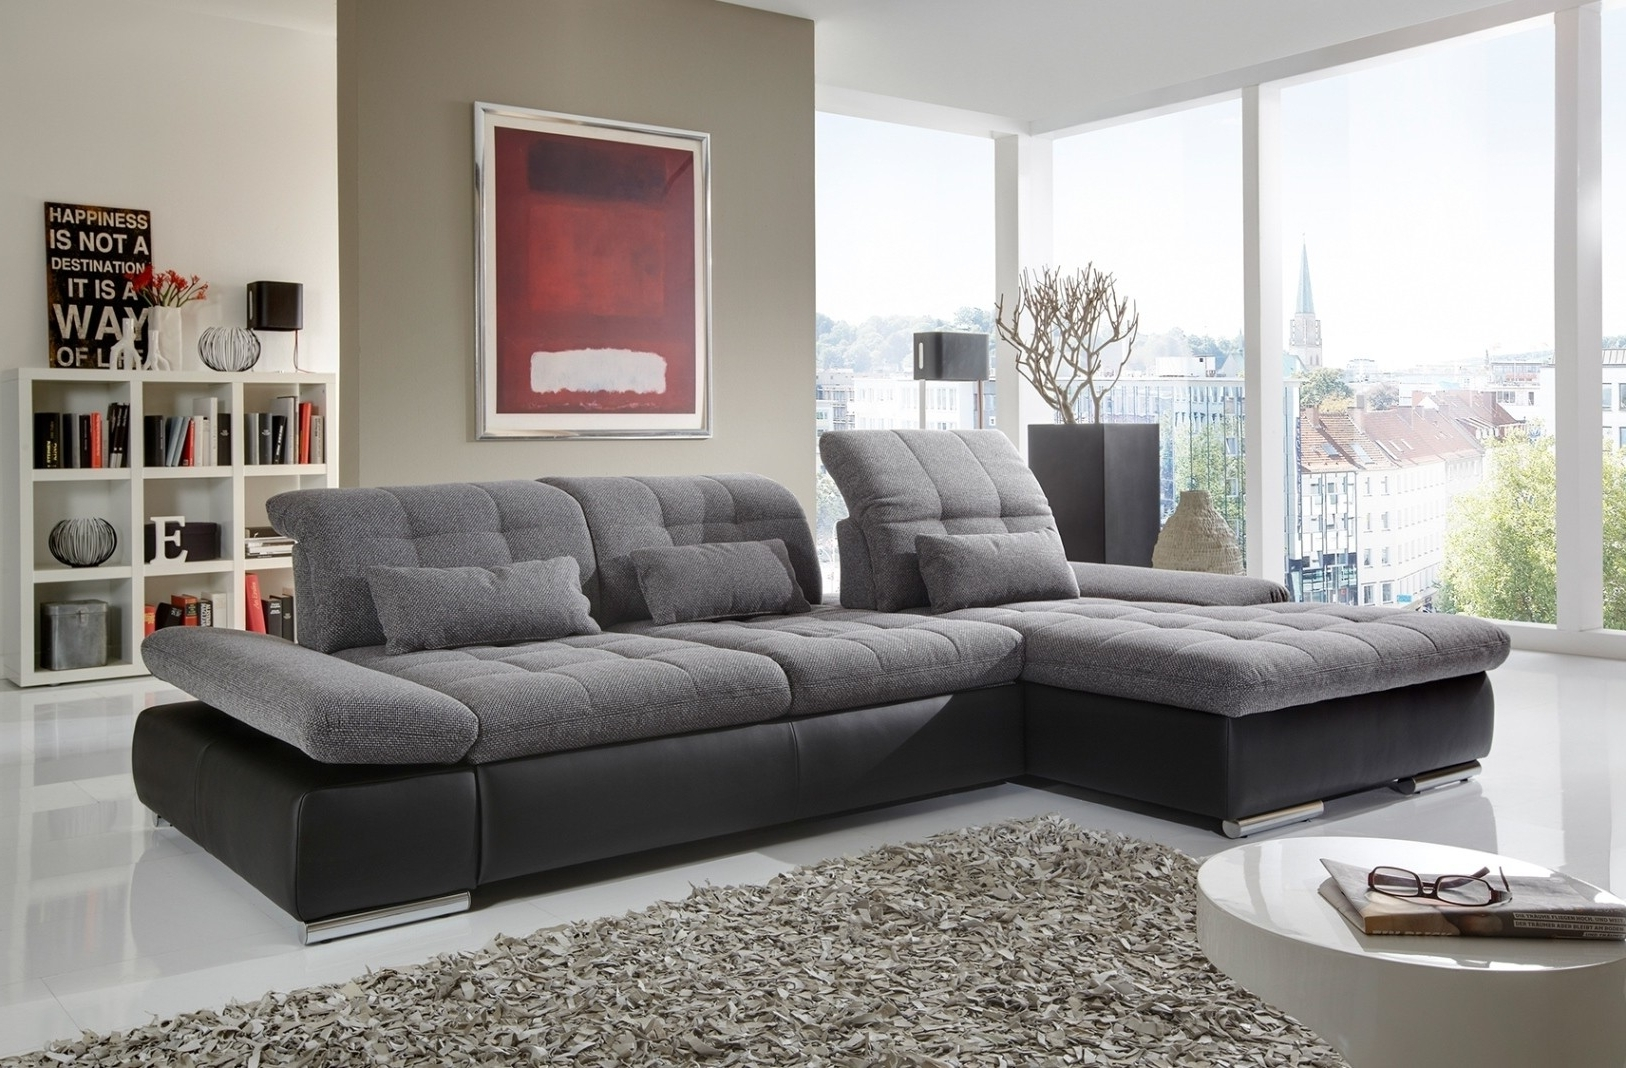 Well Known Alpine Sectional Sofa In Grey Fabric And Black Leather Left Chaise With Regard To Trinidad And Tobago Sectional Sofas (View 13 of 15)